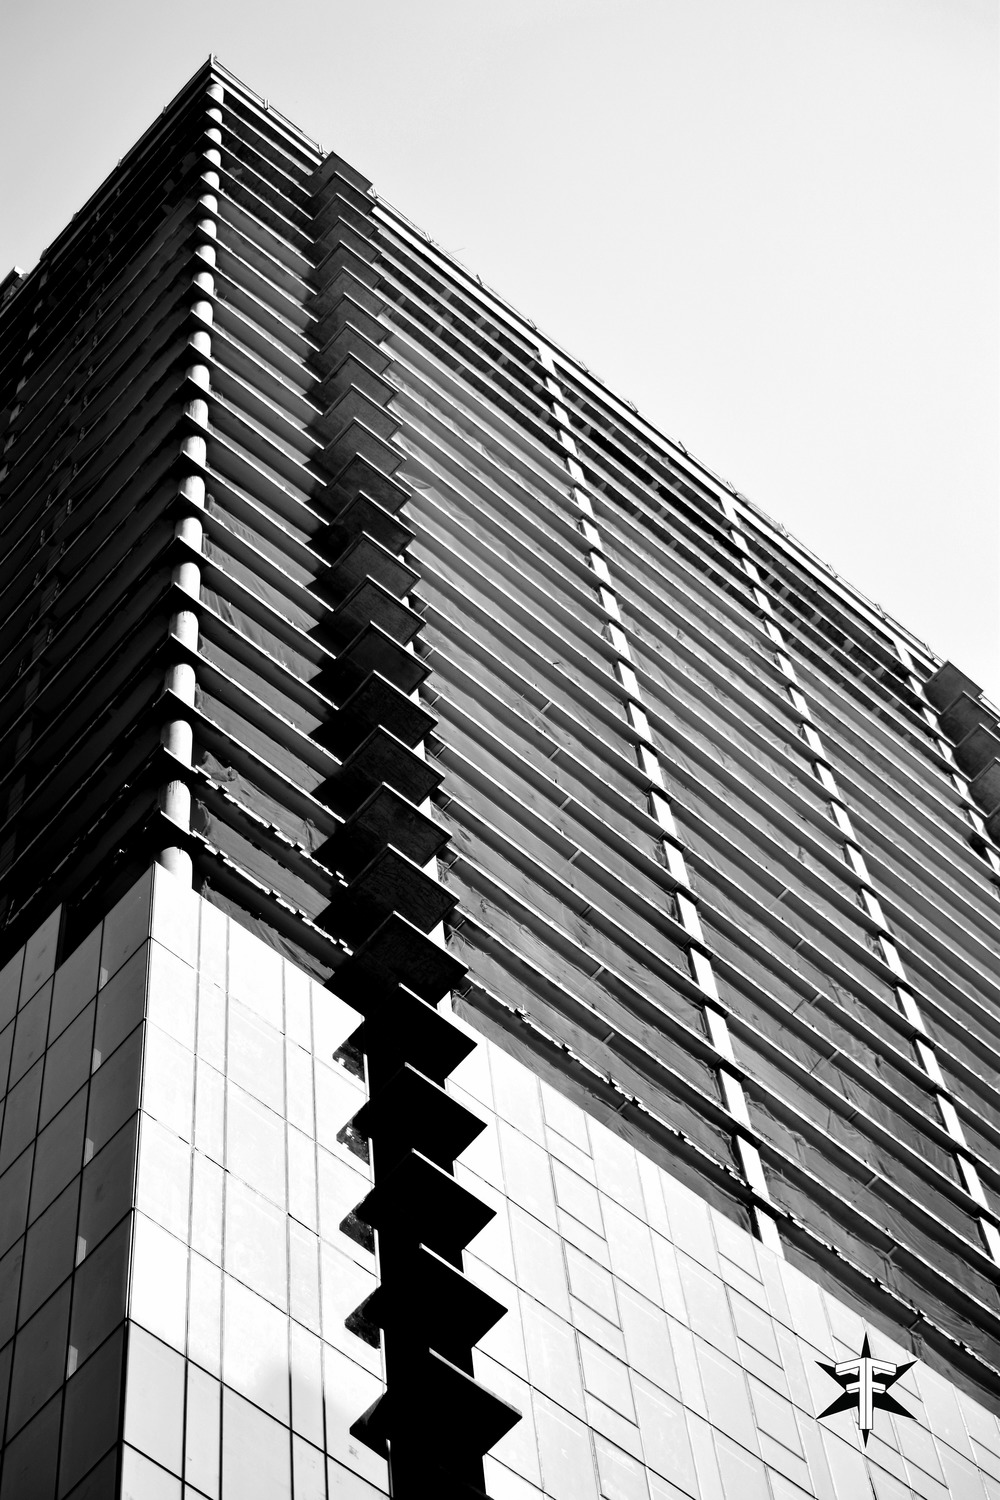 chicago architecture eric formato photography design arquitectura architettura buildings skyscraper skyscrapers-133.jpg